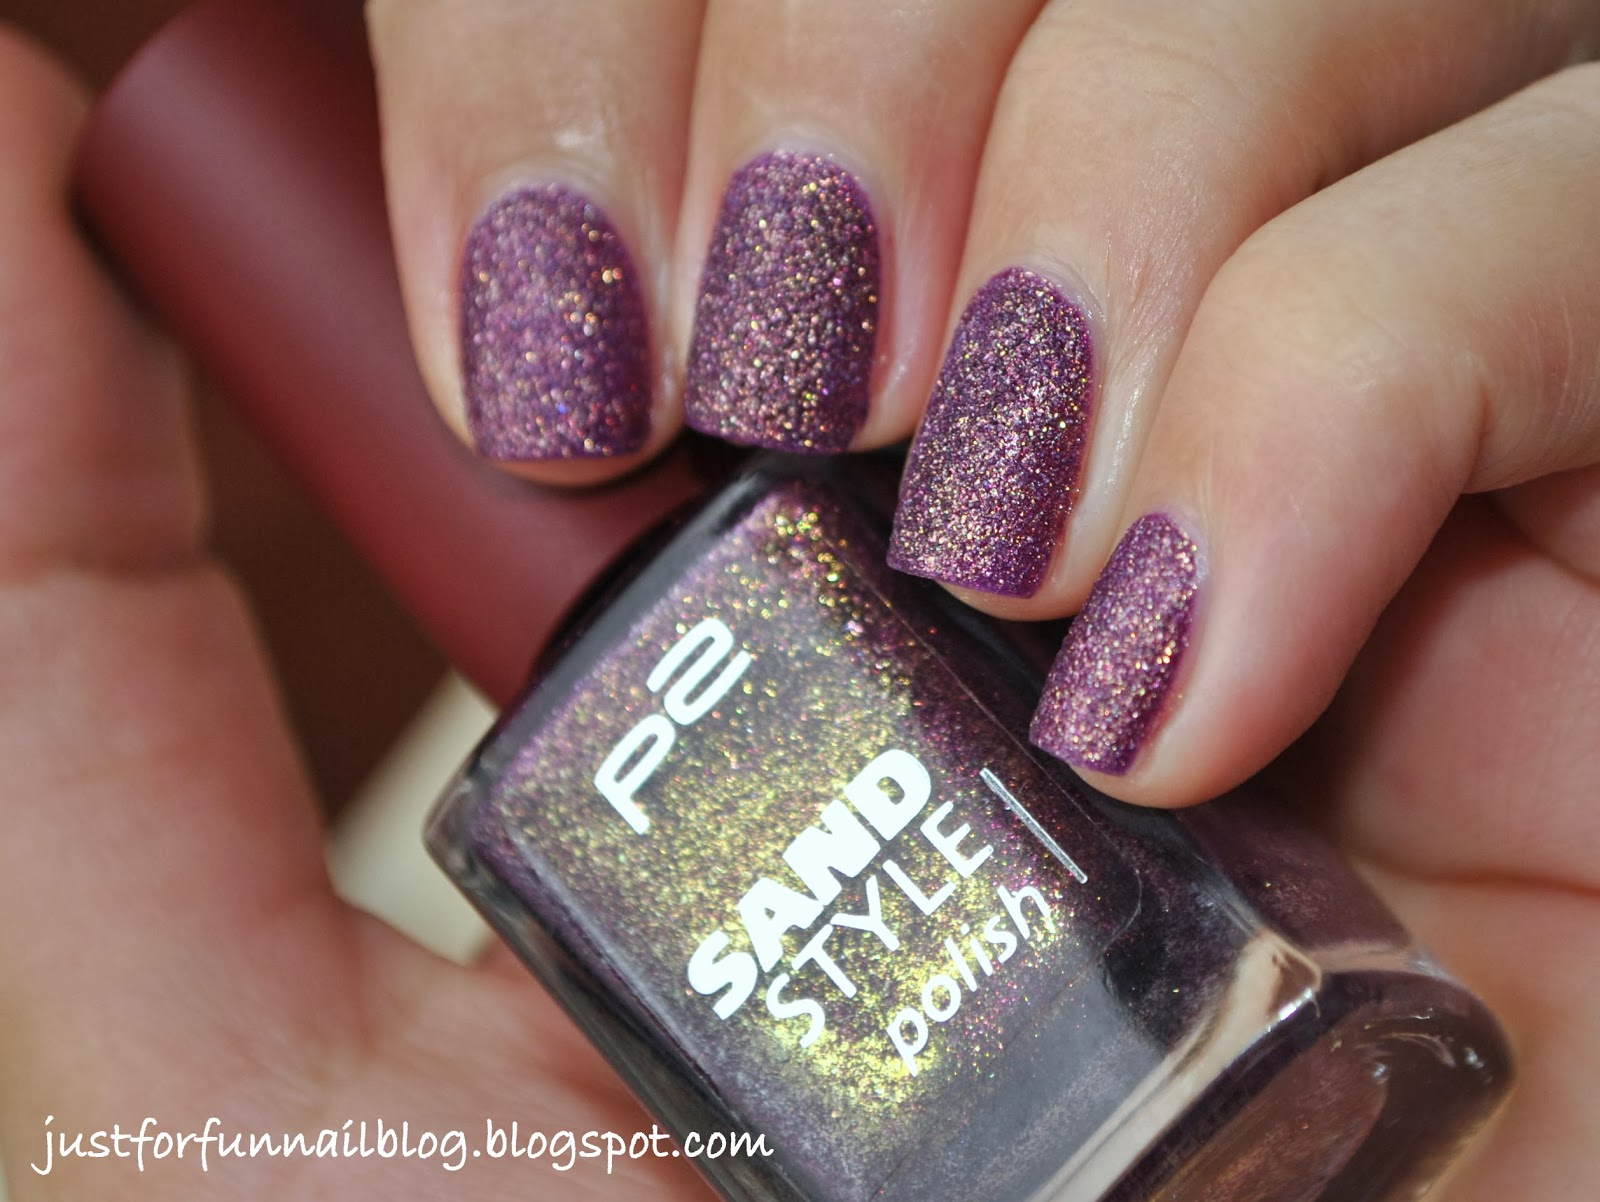 P2 - Sand Style Polish - 030 Seductive swatch